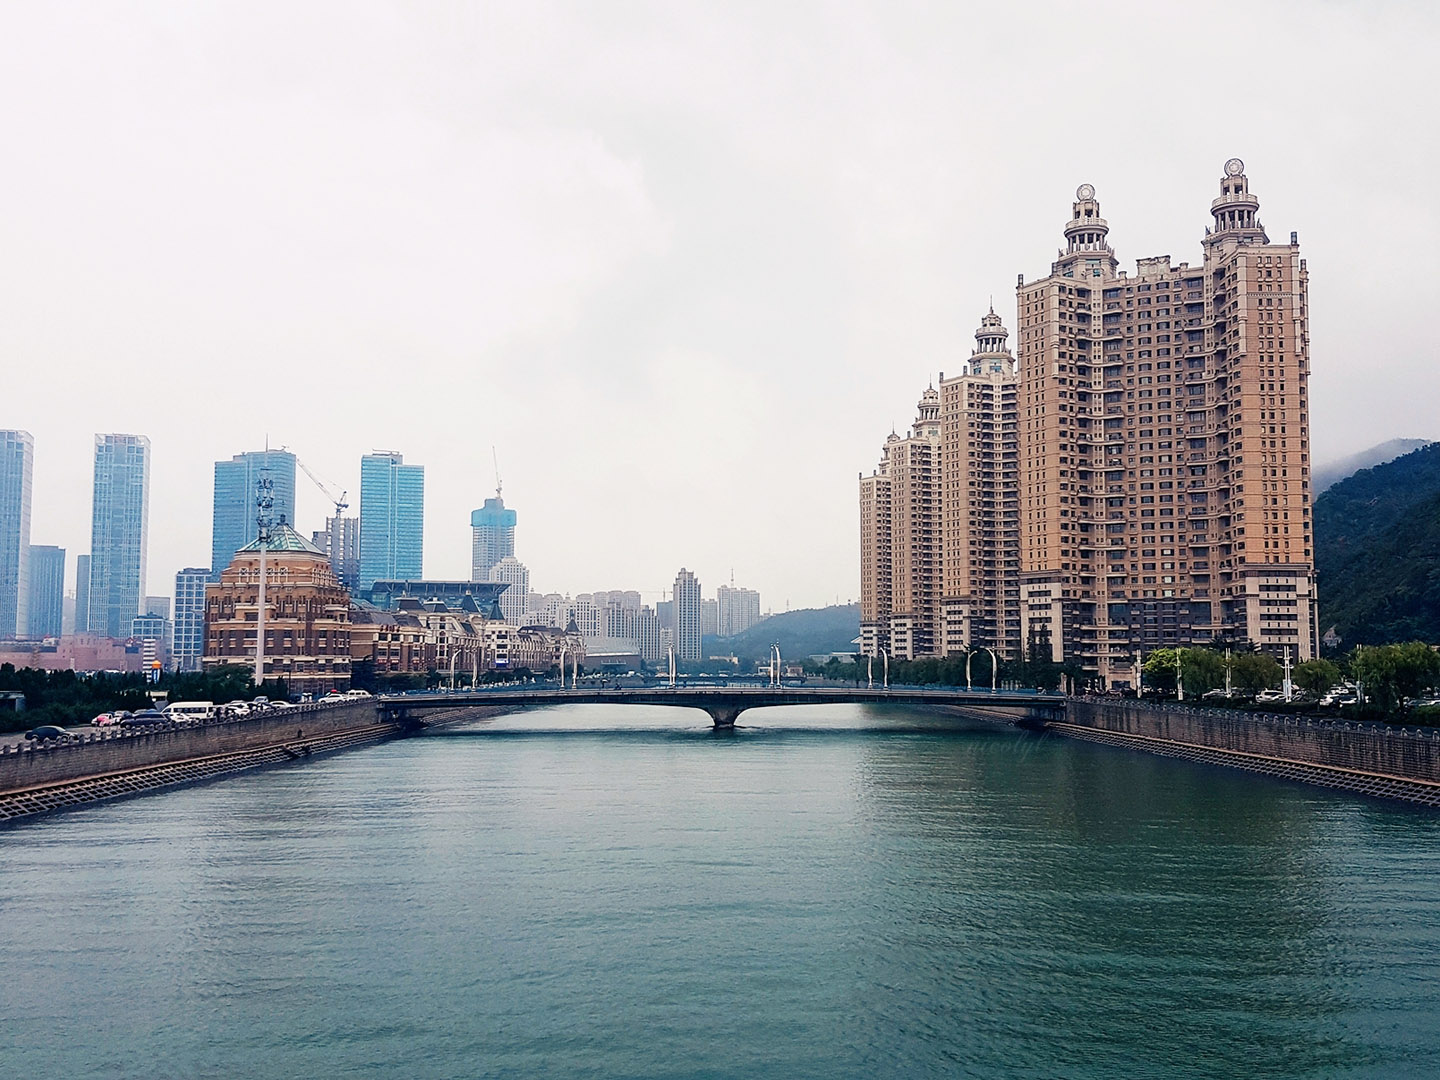 dalian liaoning buildings architecture